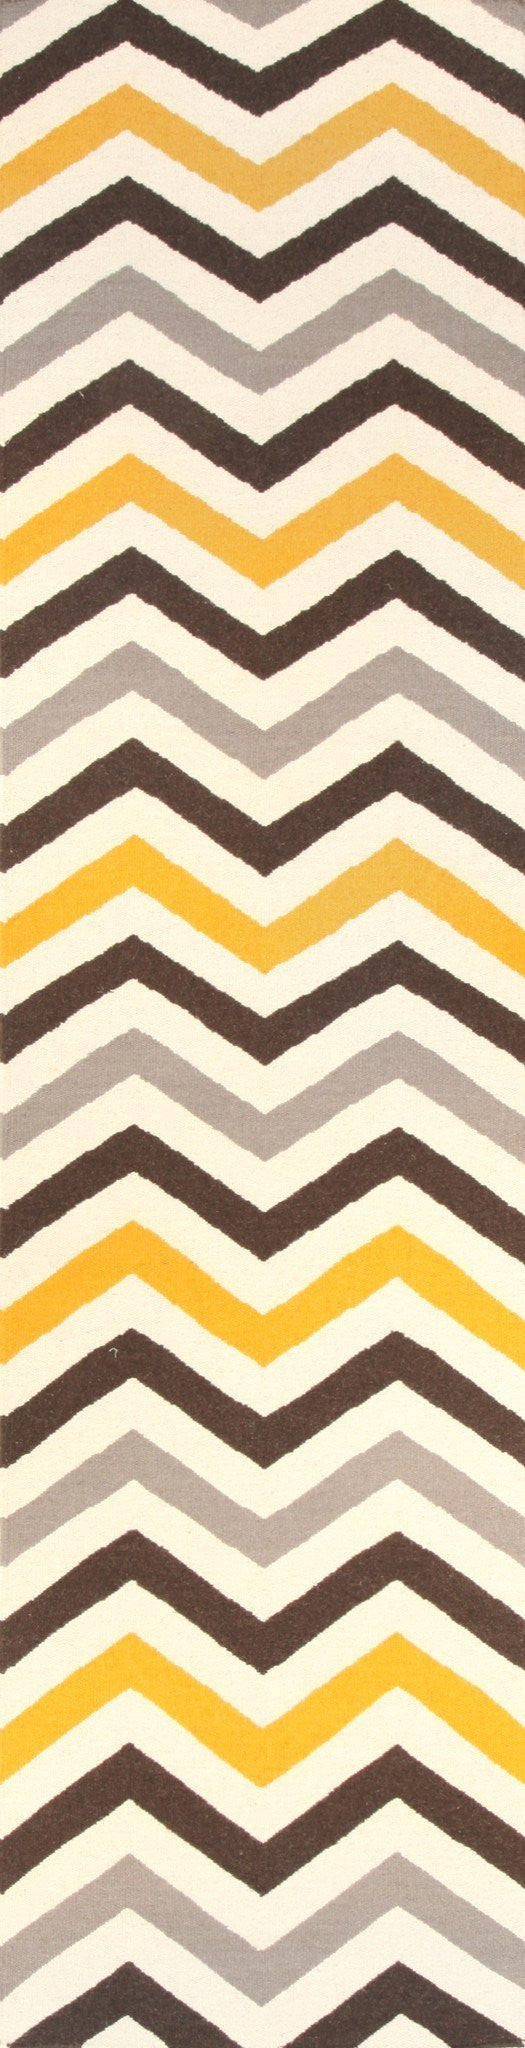 Flat Weave Design Rug Yellow Brown Runner